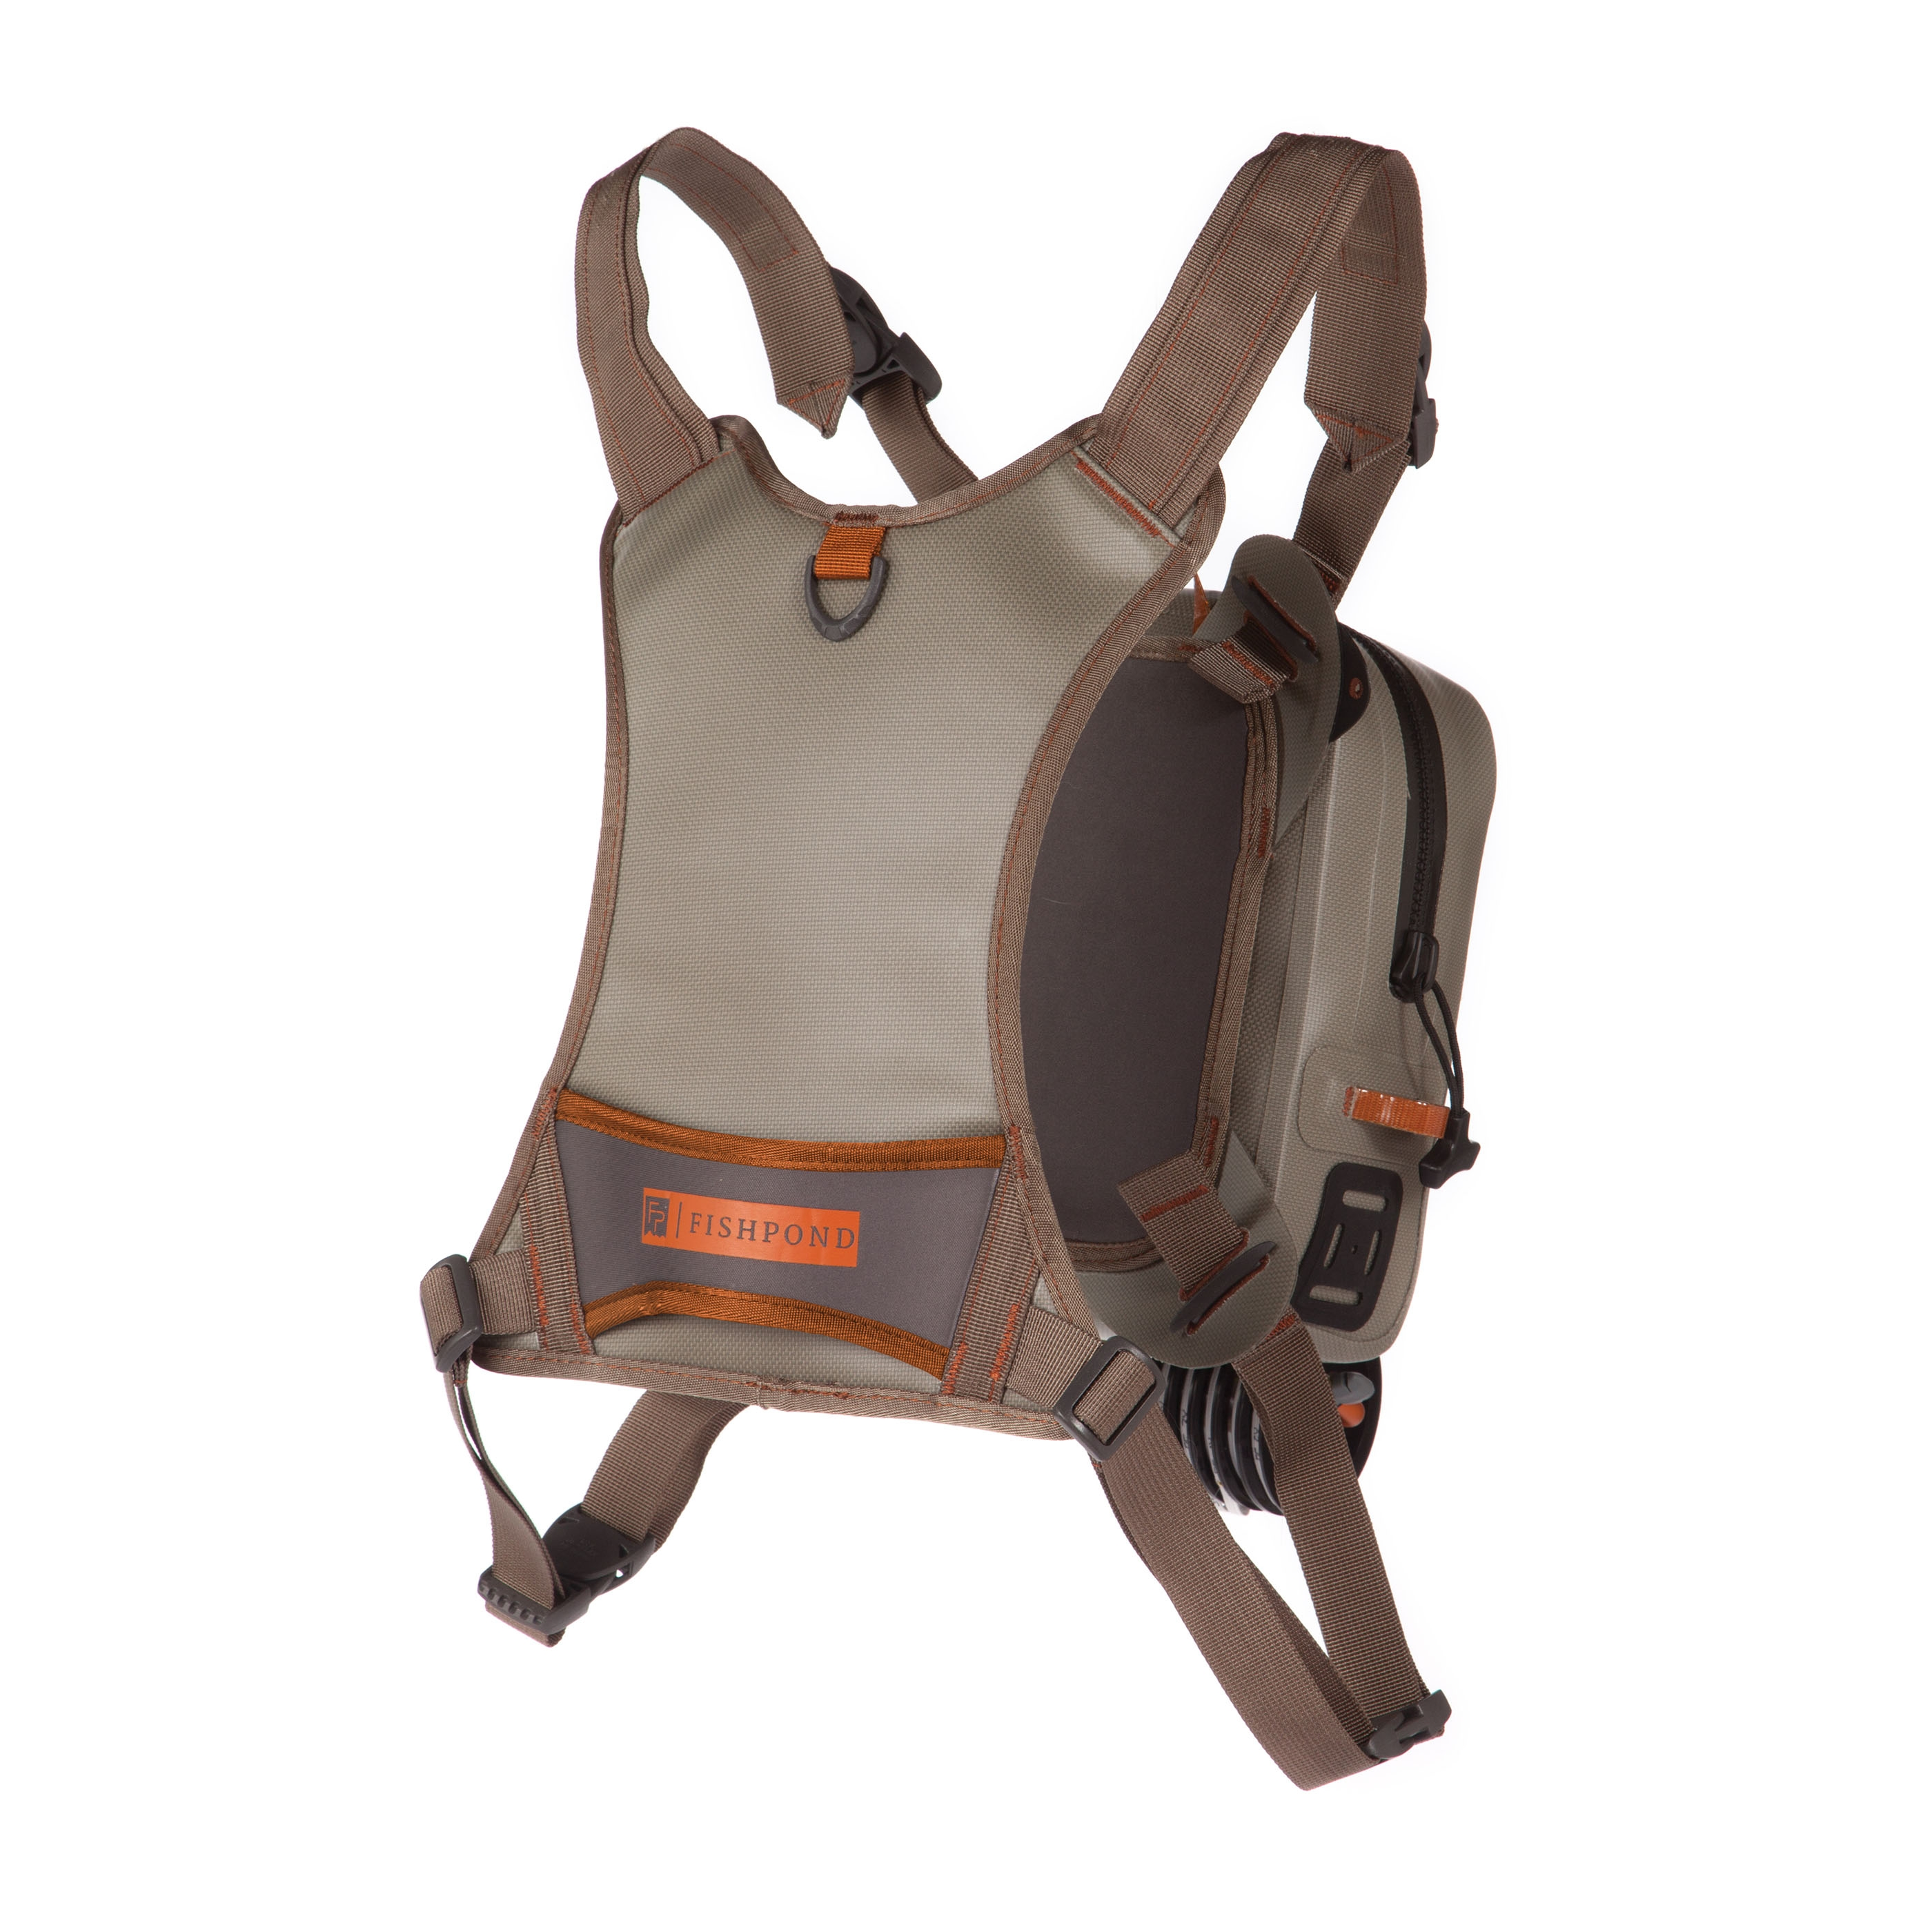 Fishpond Thunderhead Waterproof Chest Pack